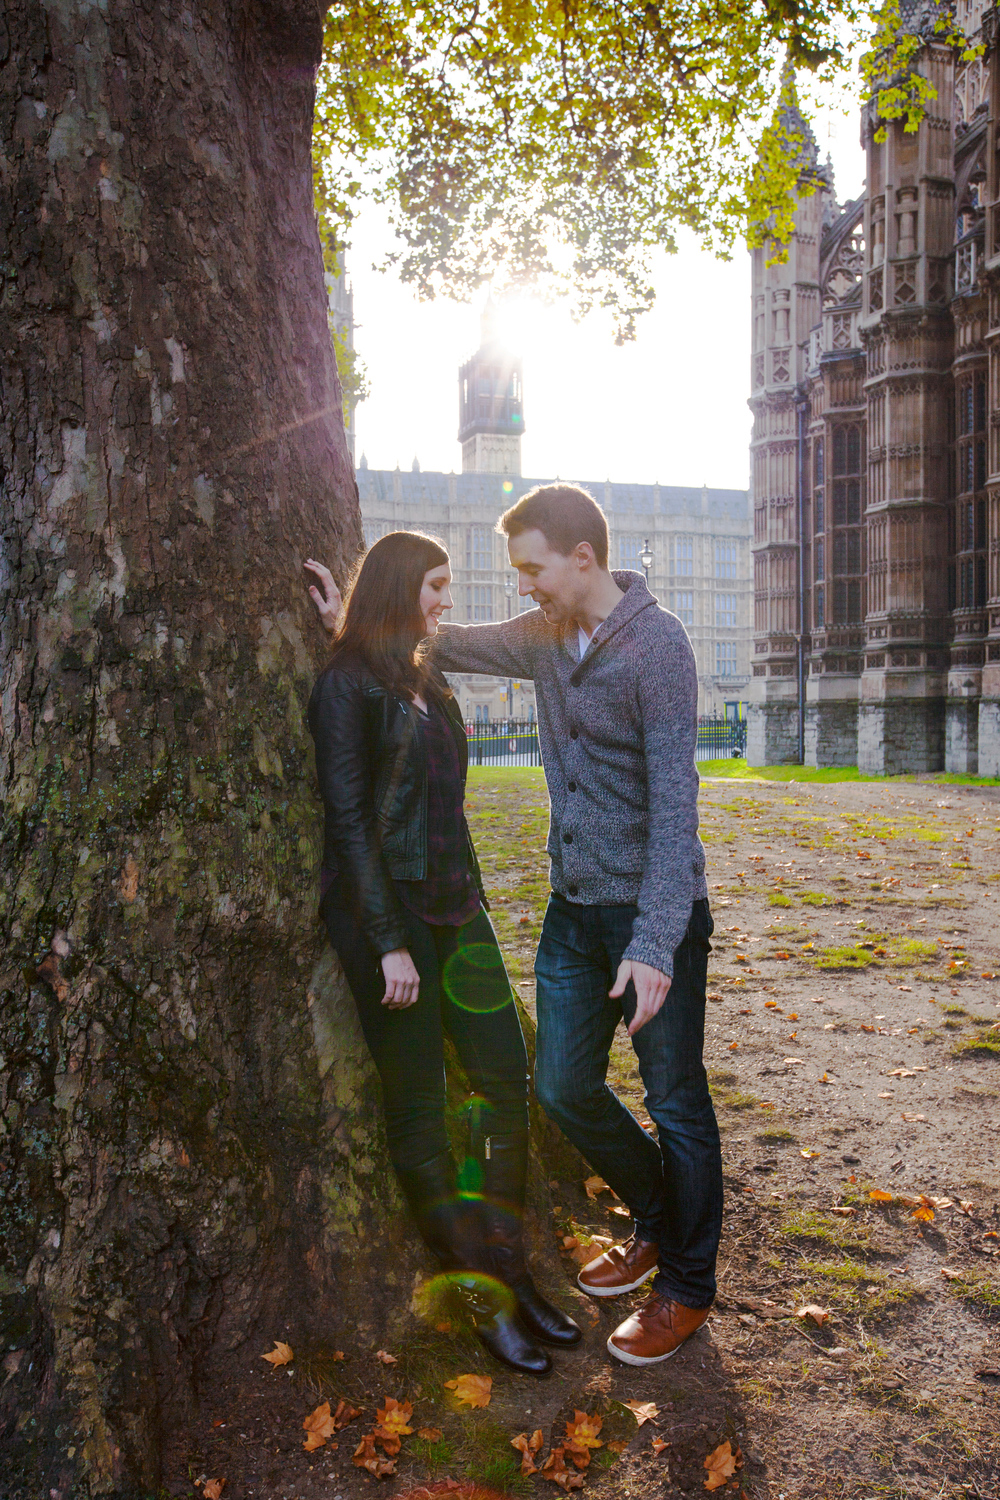 London Engagement | London Vacation Photographer 2